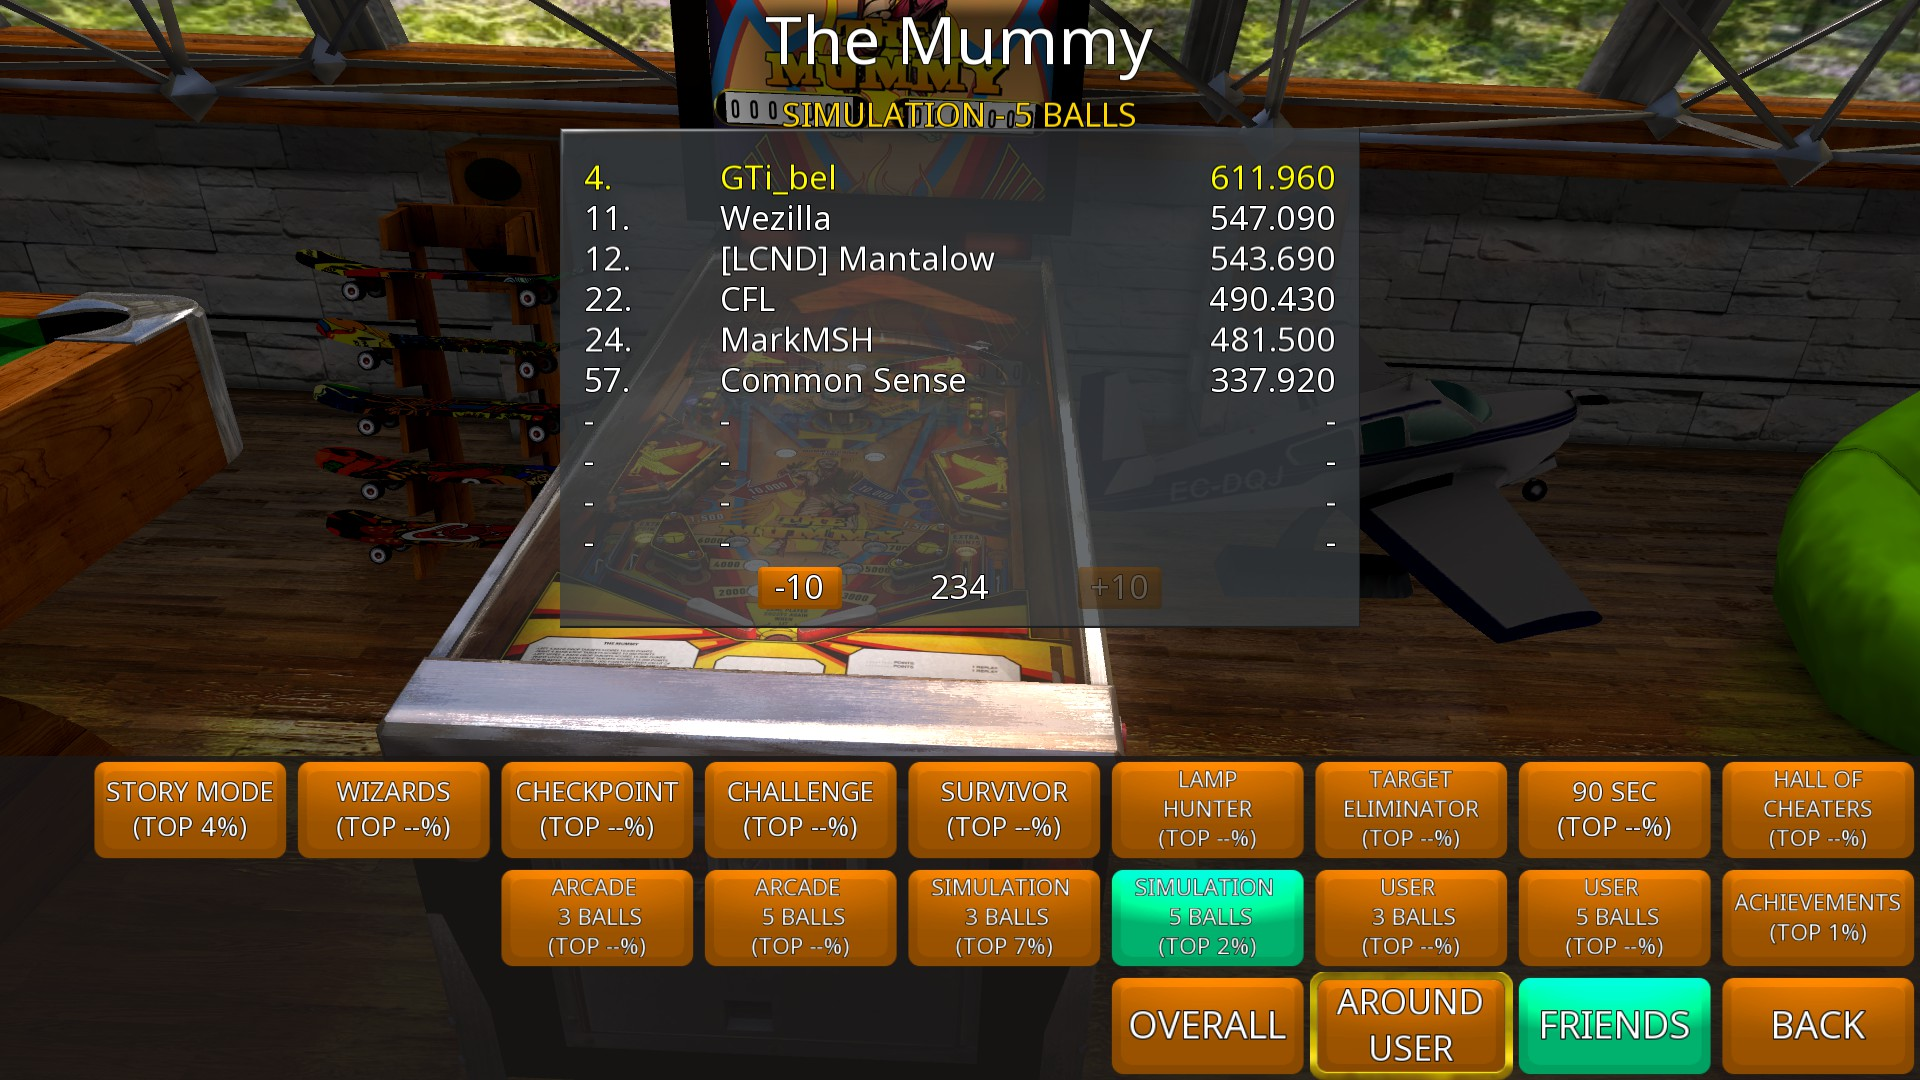 GTibel: Zaccaria Pinball: The Mummy [5 balls] (PC) 611,960 points on 2018-10-01 02:44:45